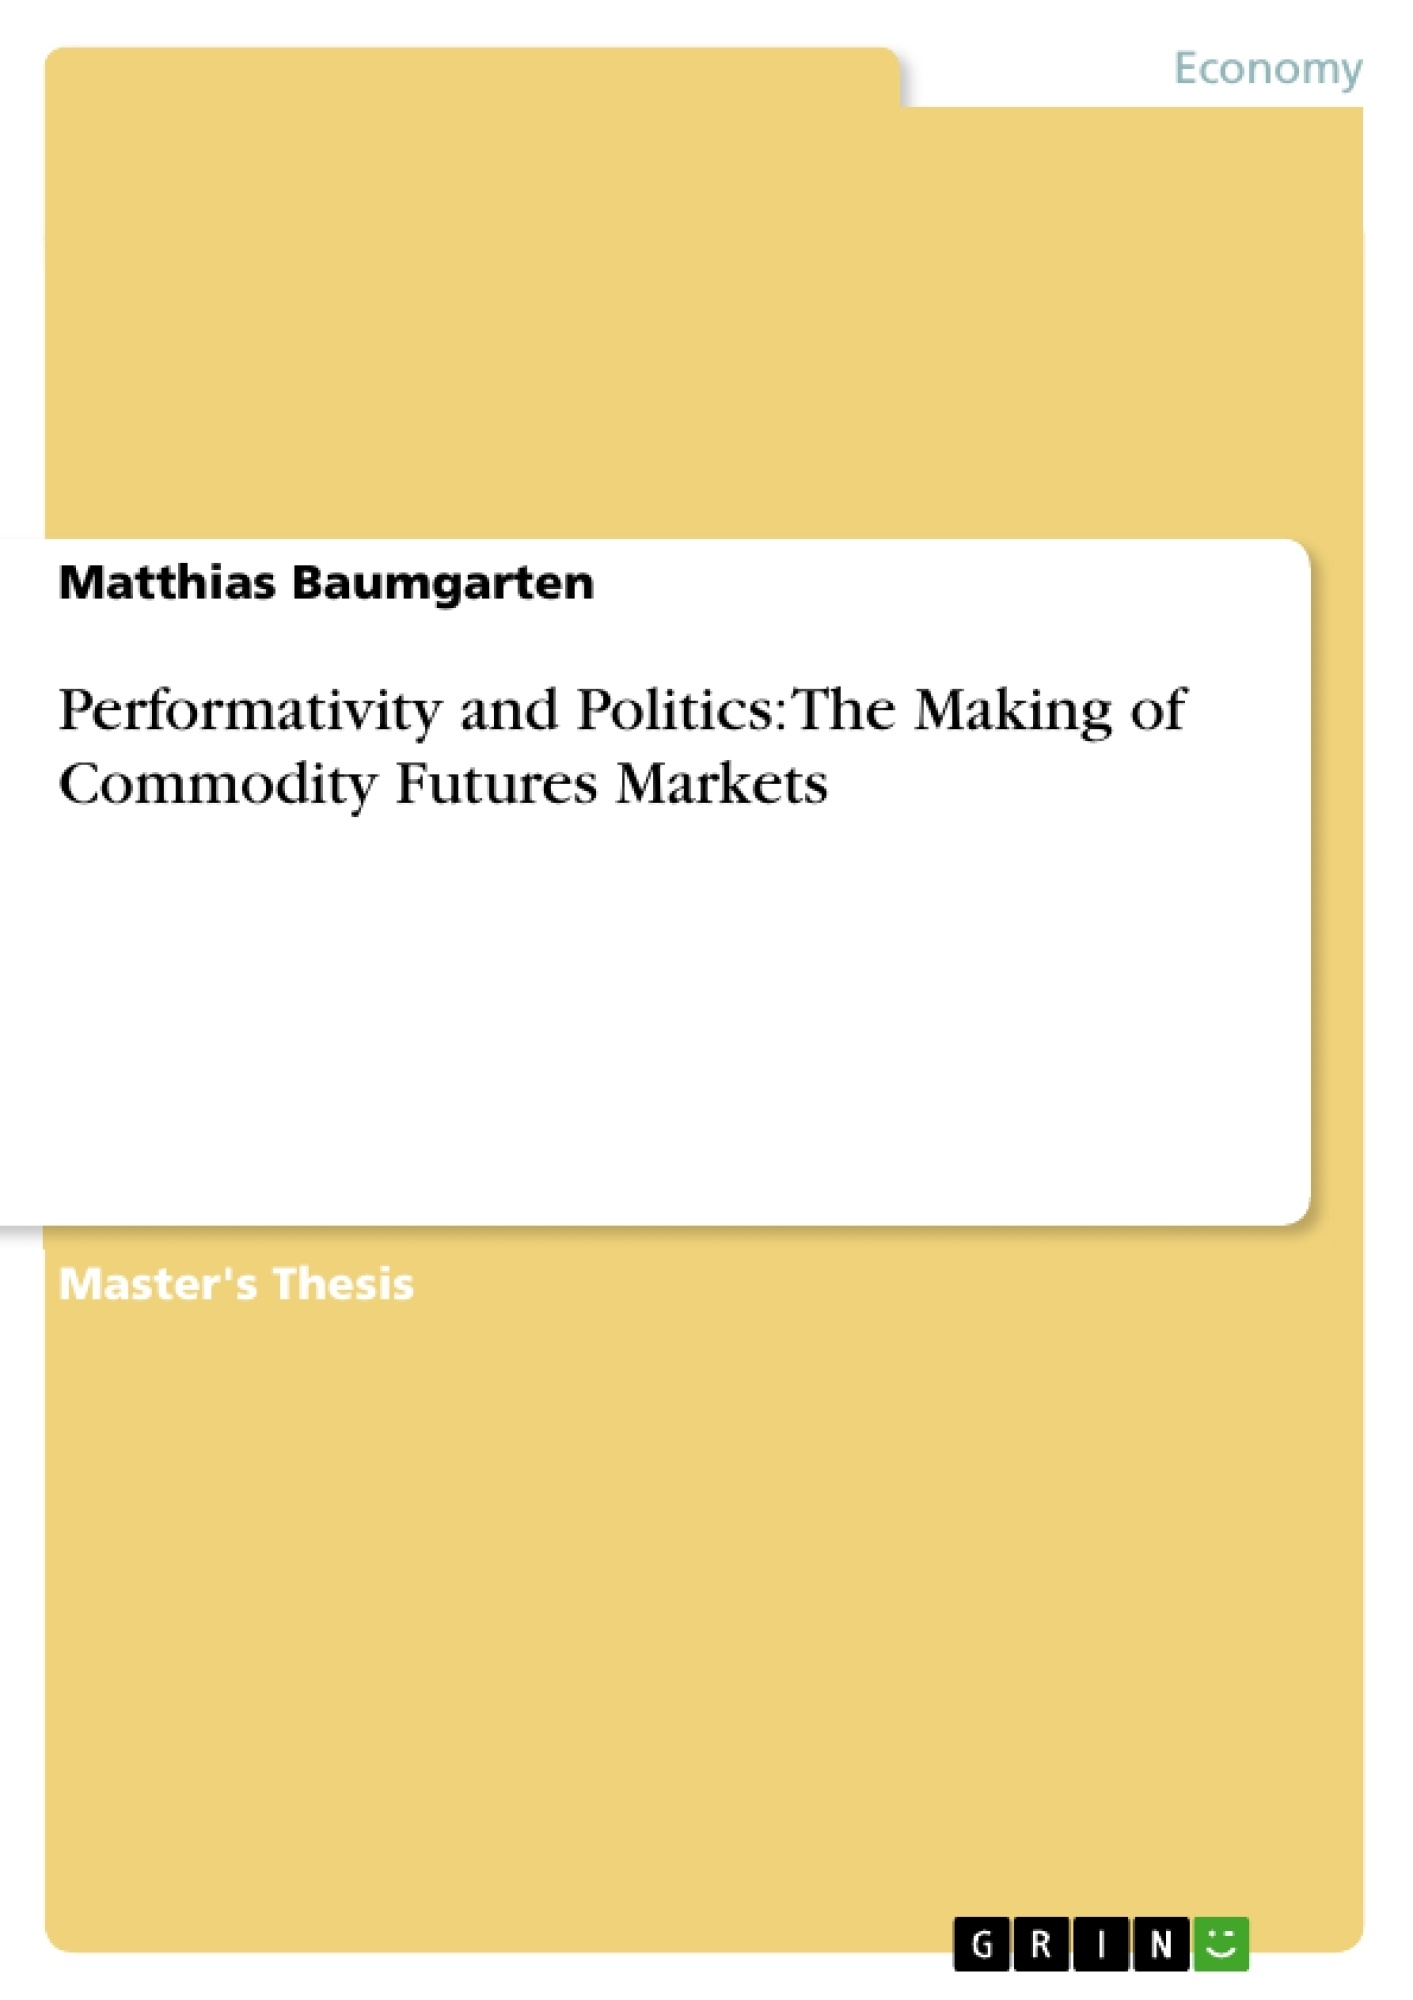 Title: Performativity and Politics: The Making of Commodity Futures Markets